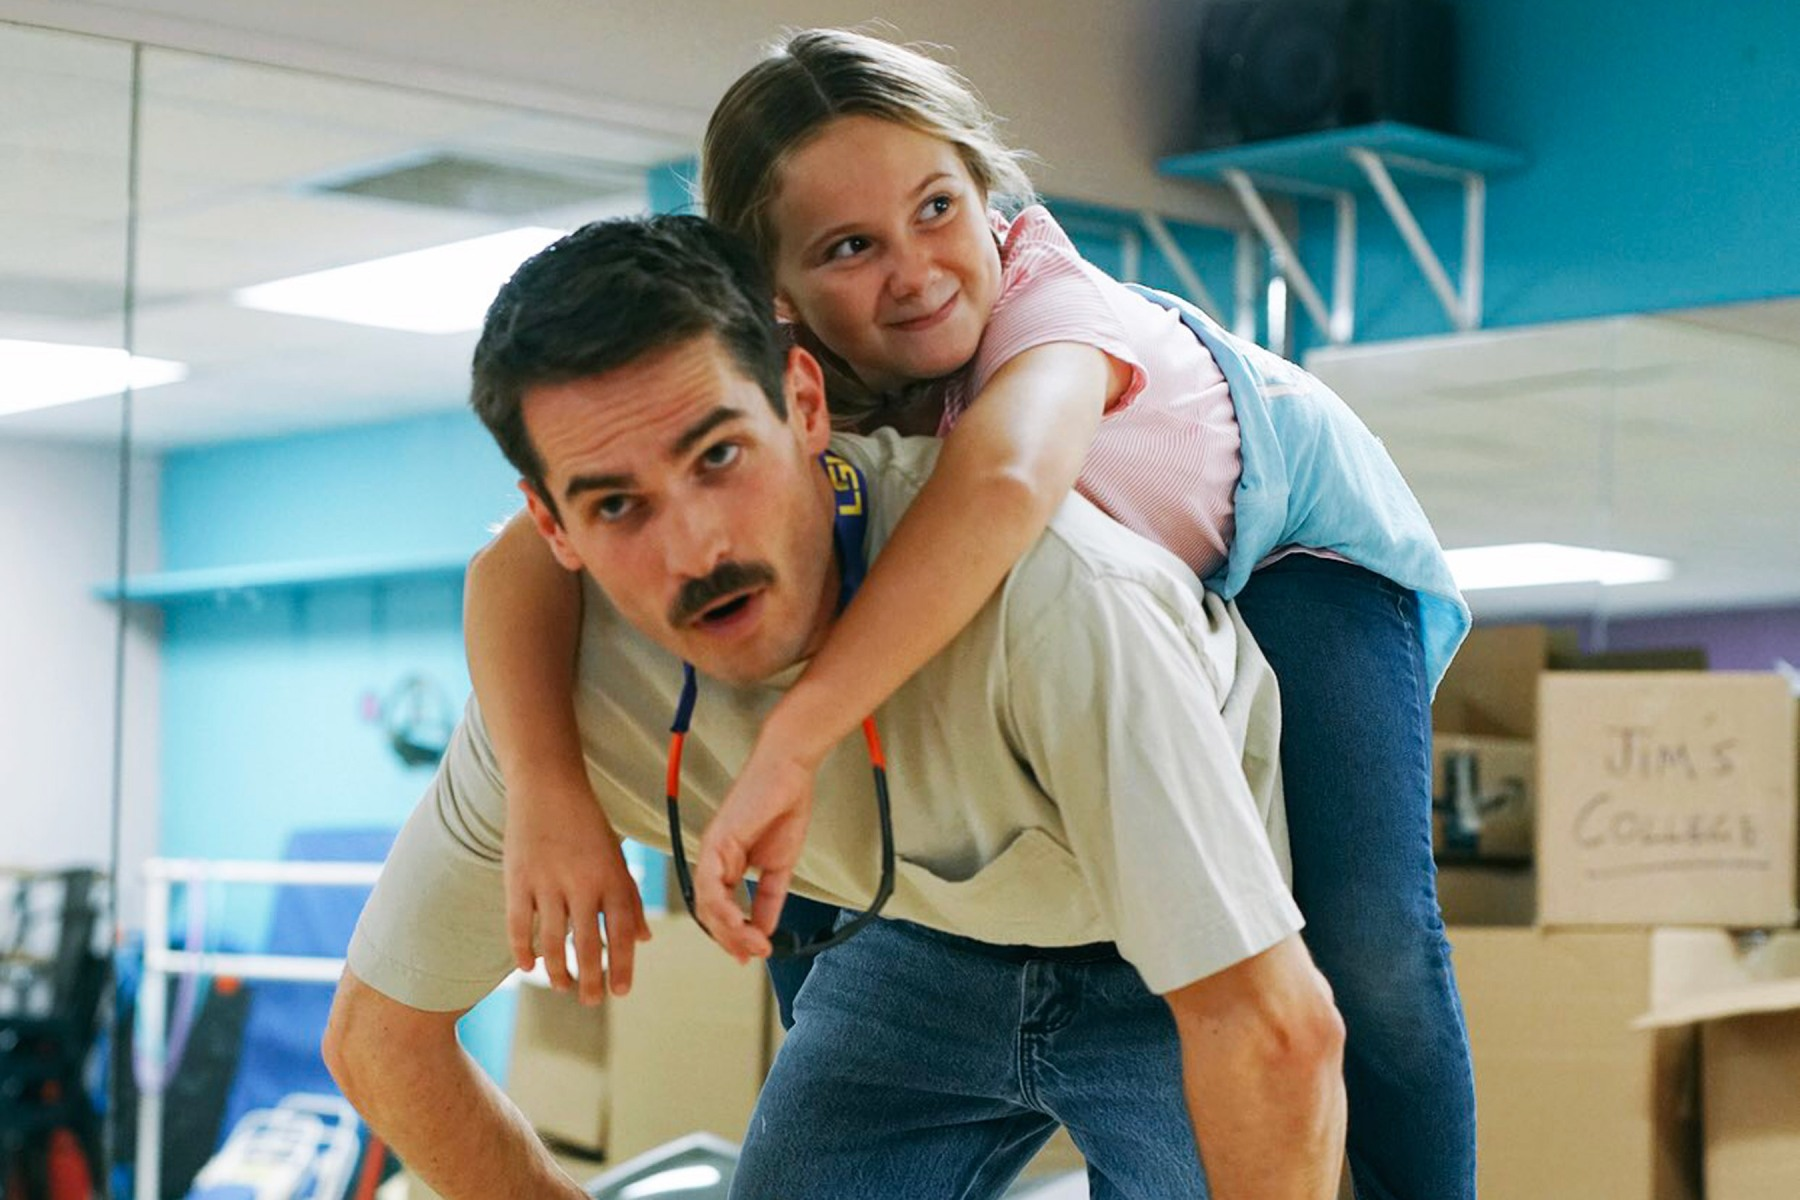 Thunder Road' Review: A Cop, A Character Study, An Instant Classic - Rolling Stone